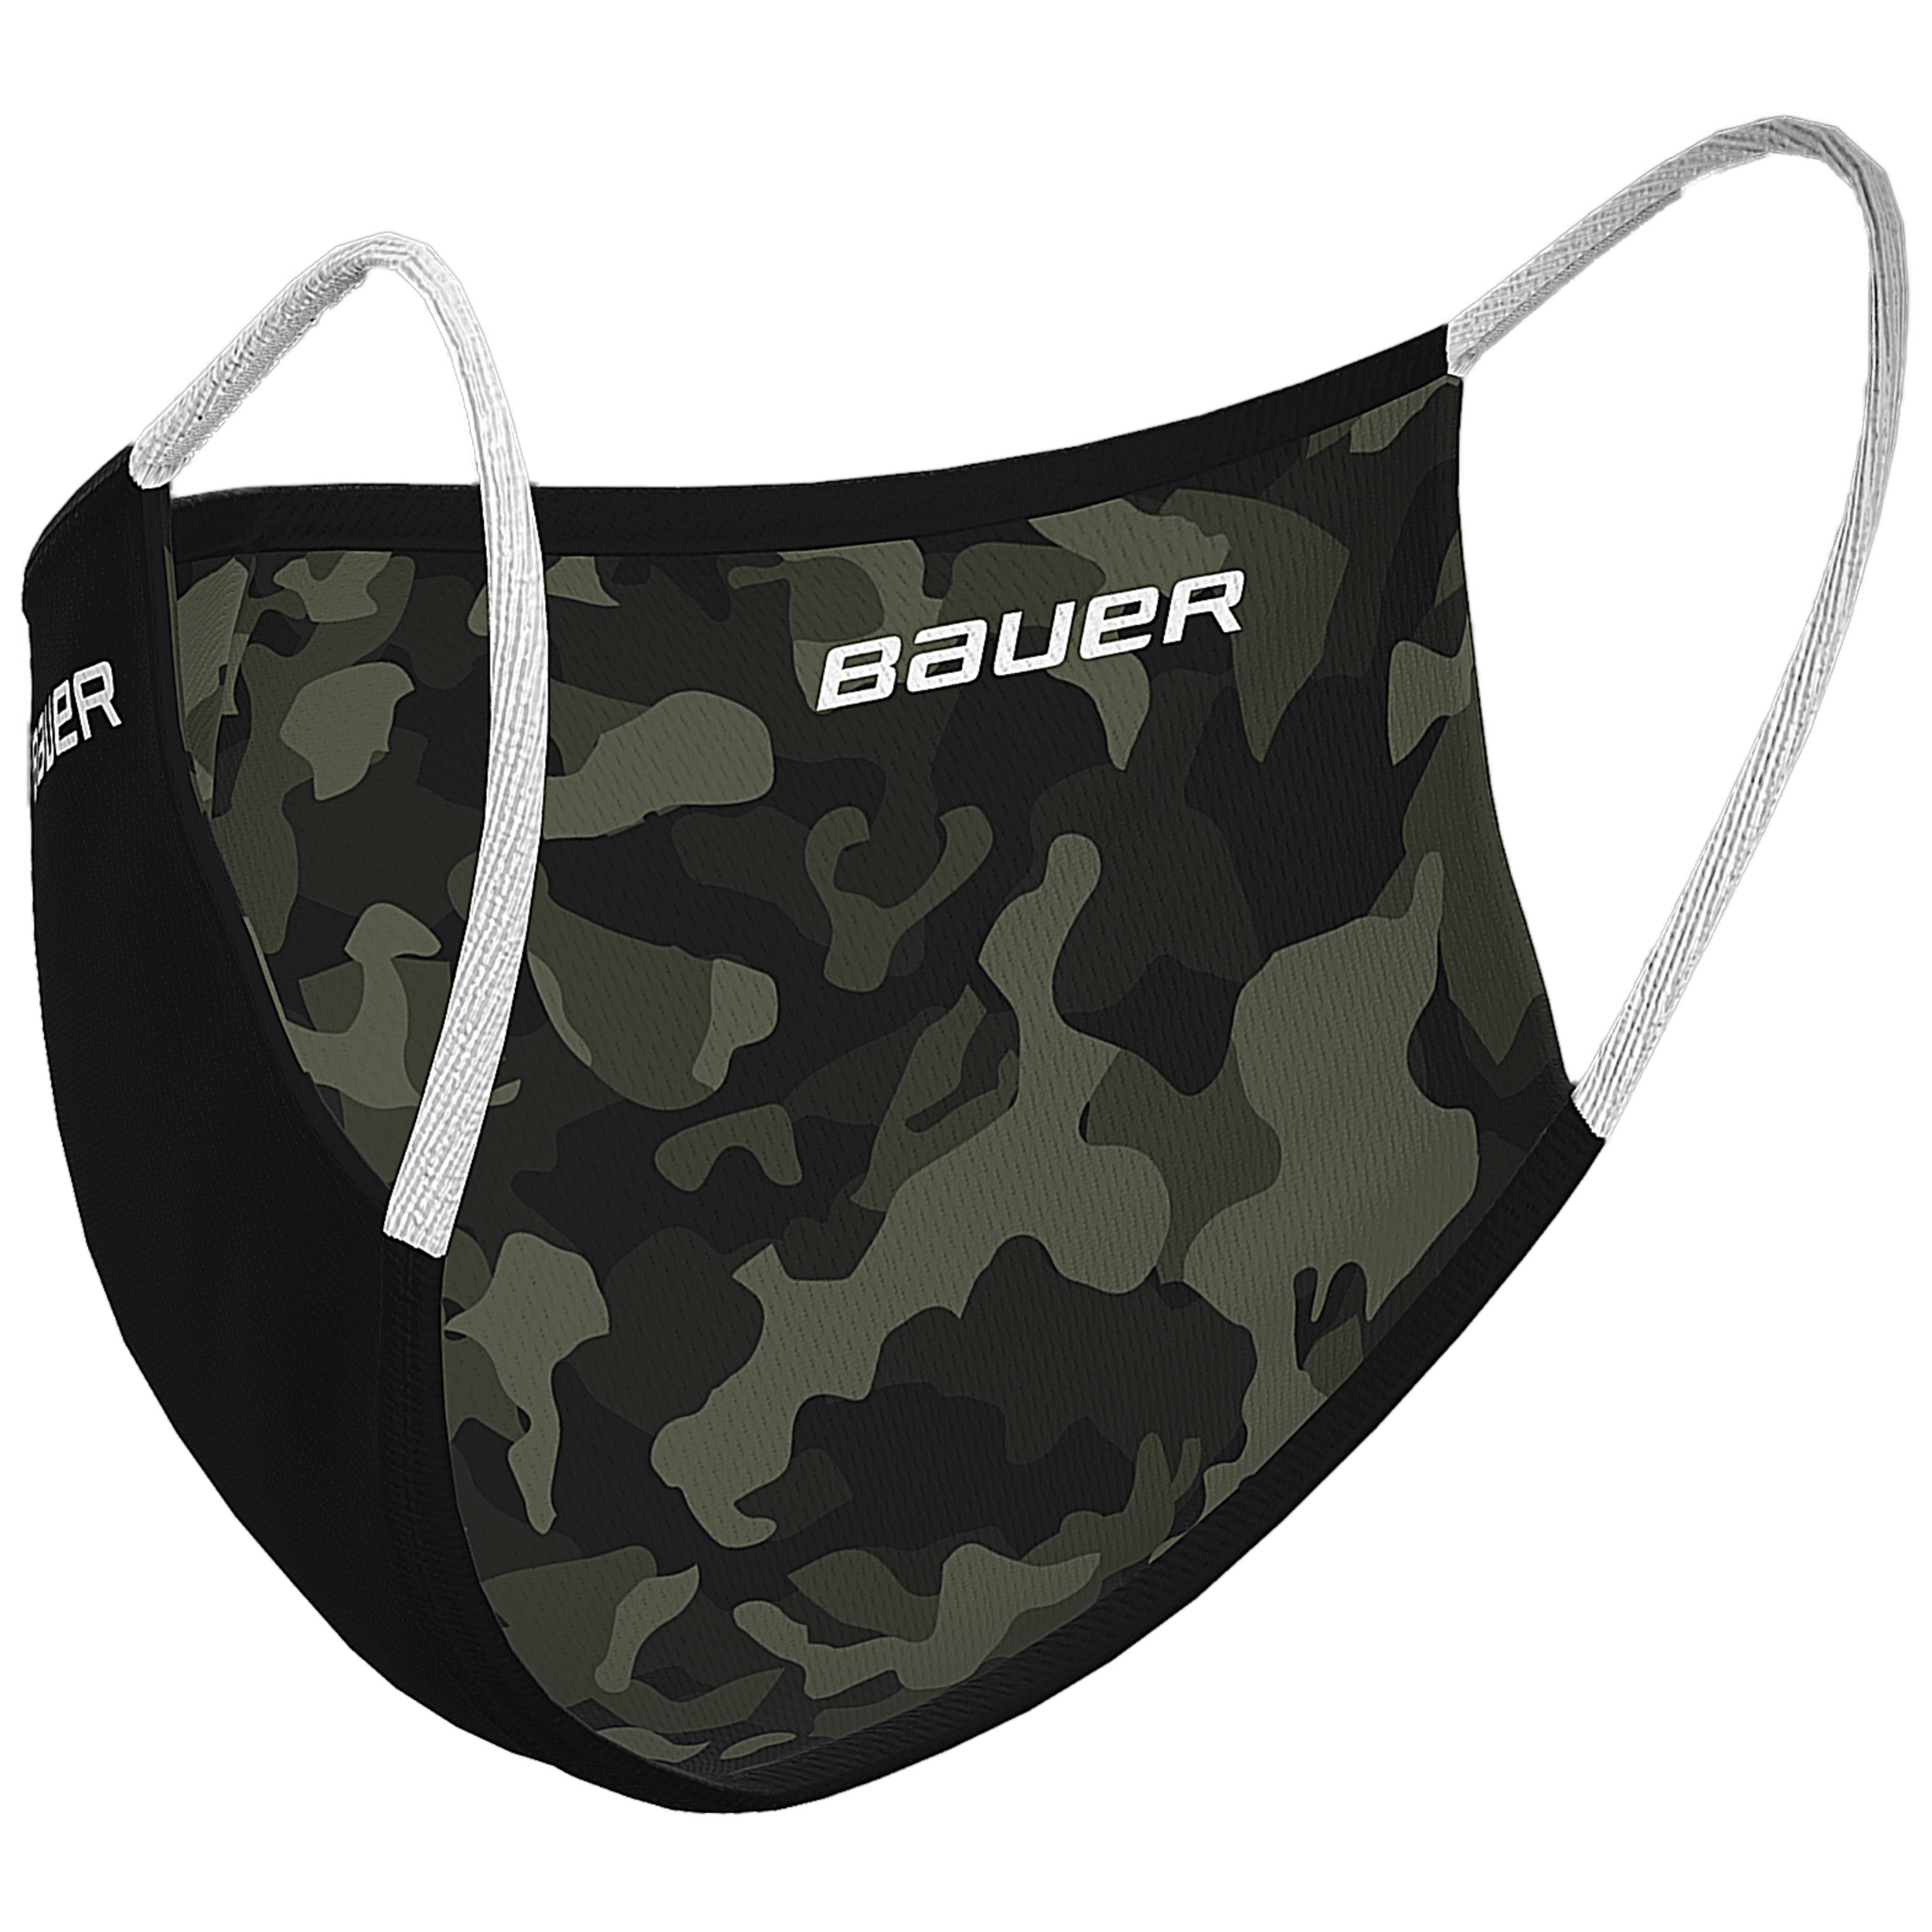 Bauer Reversible Fabric Face Mask,Black/Camo,Medium